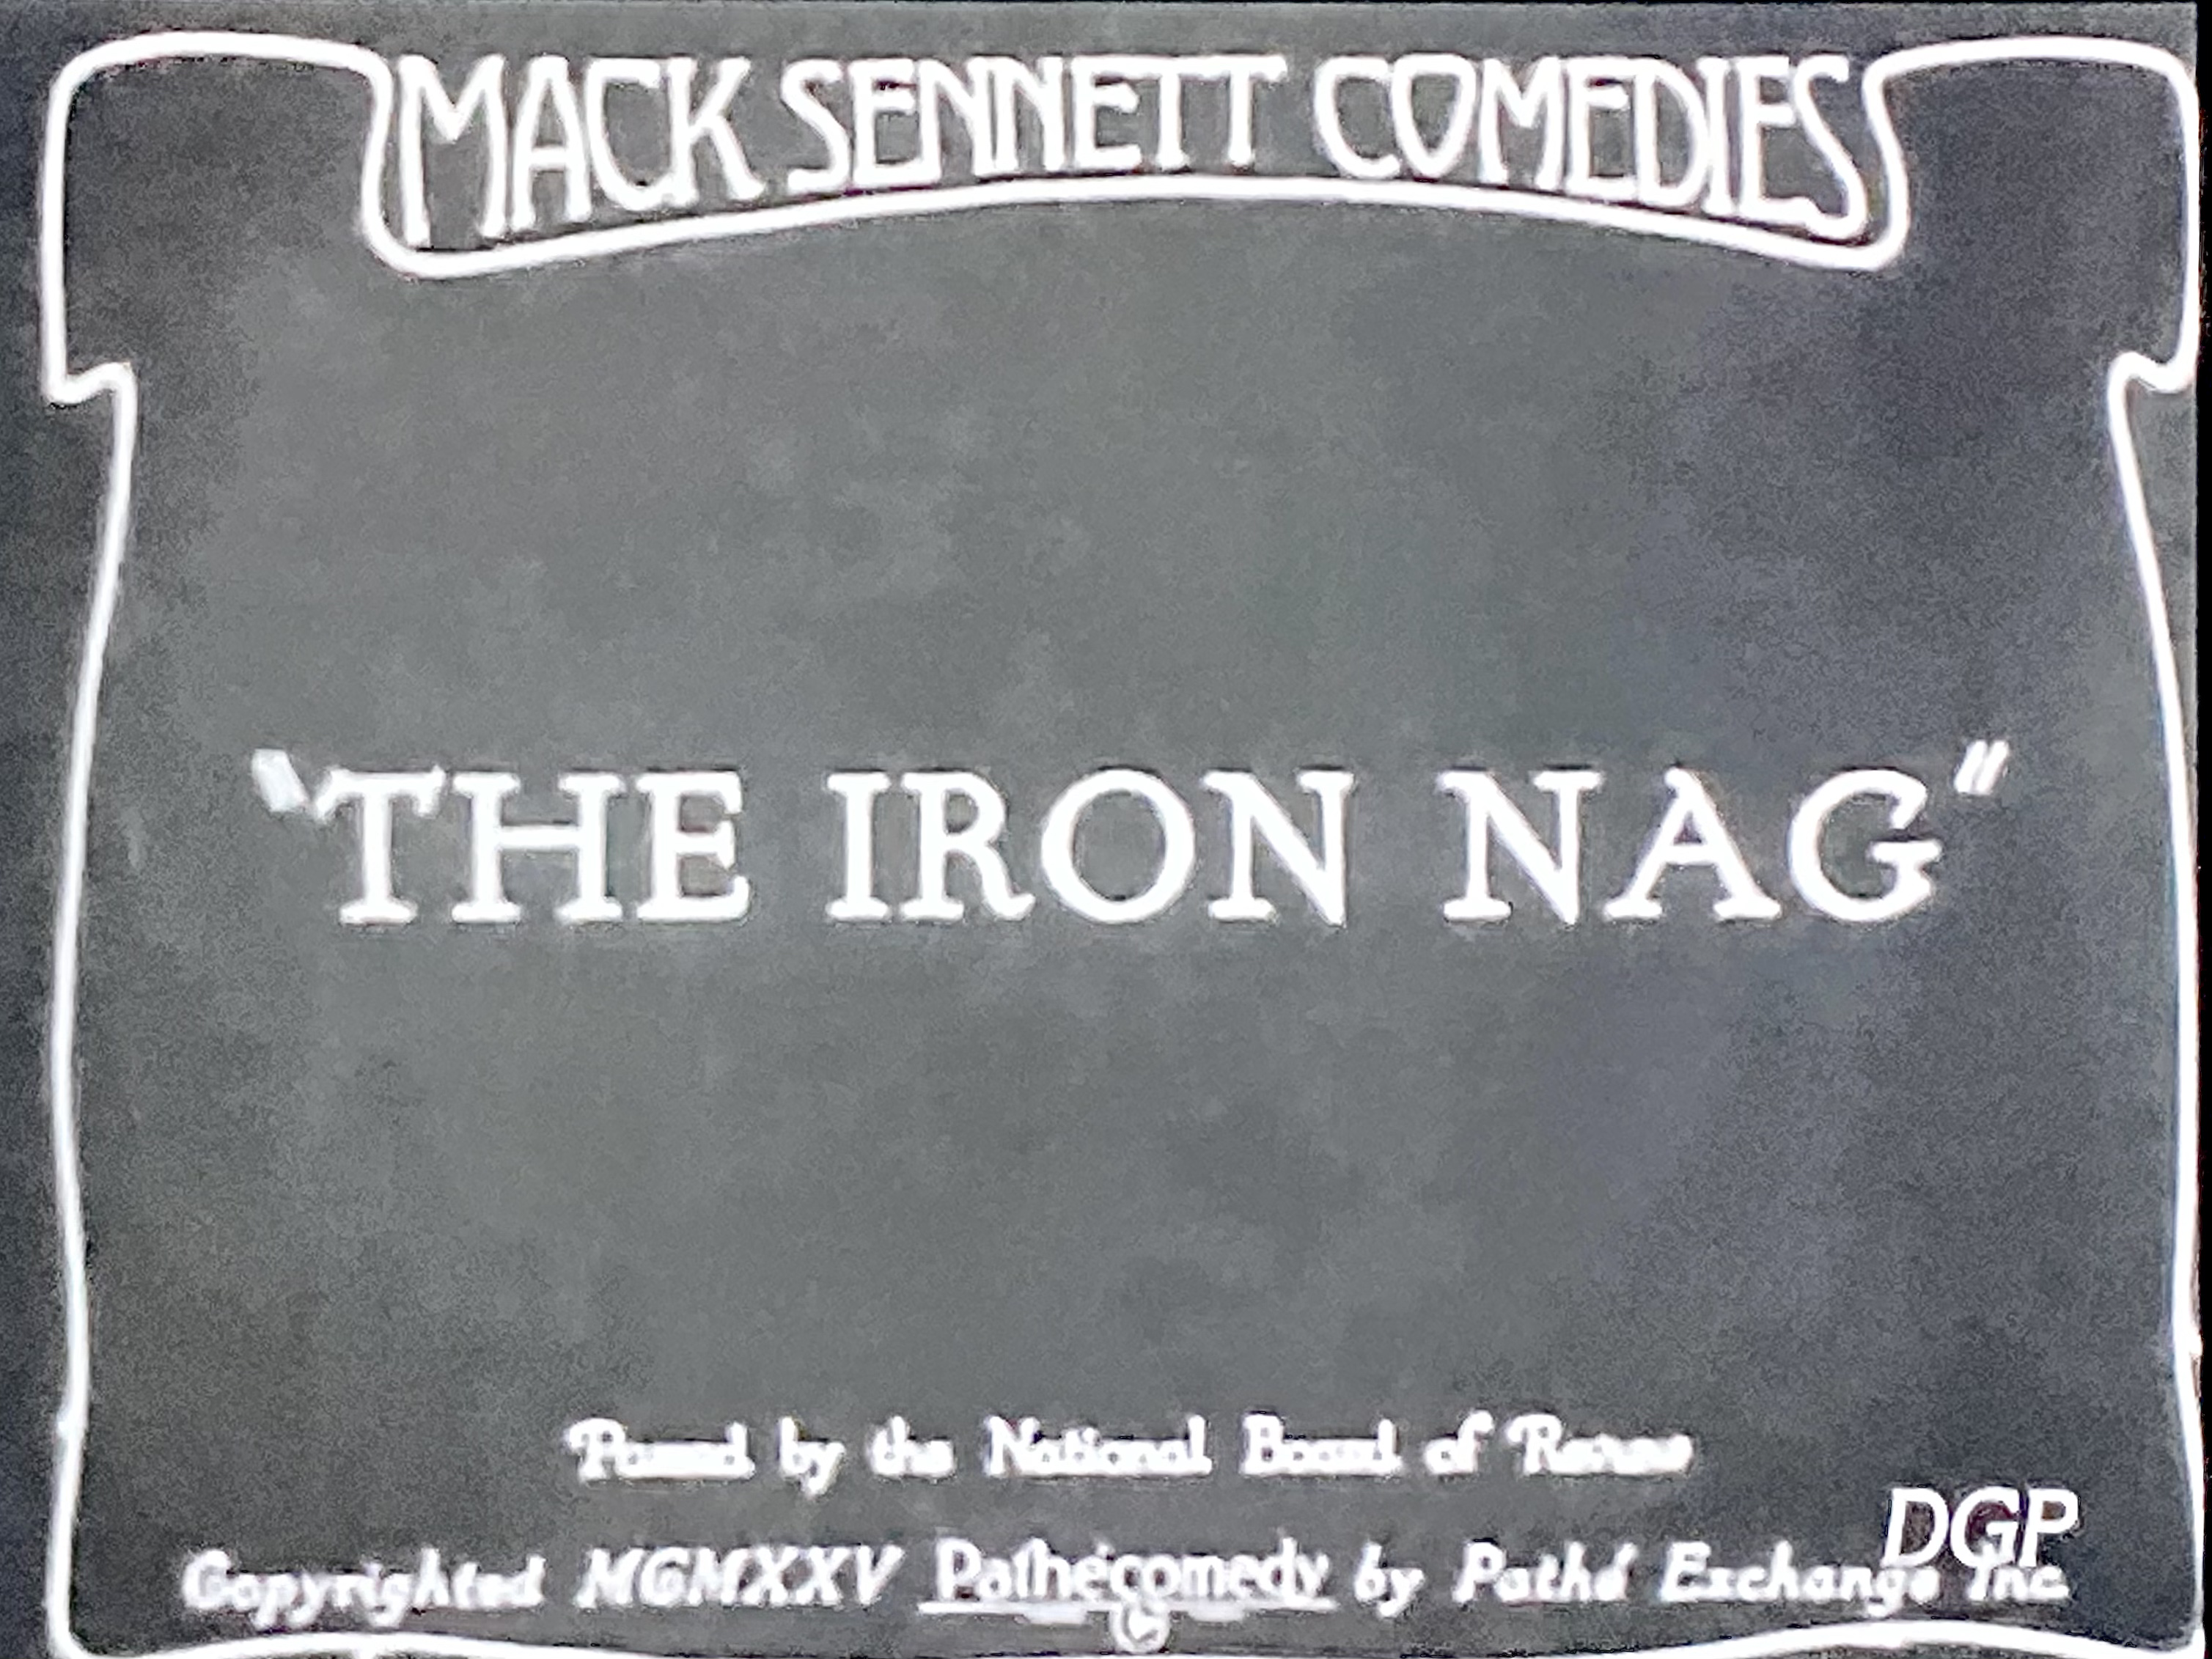 The Iron Nag (1925)